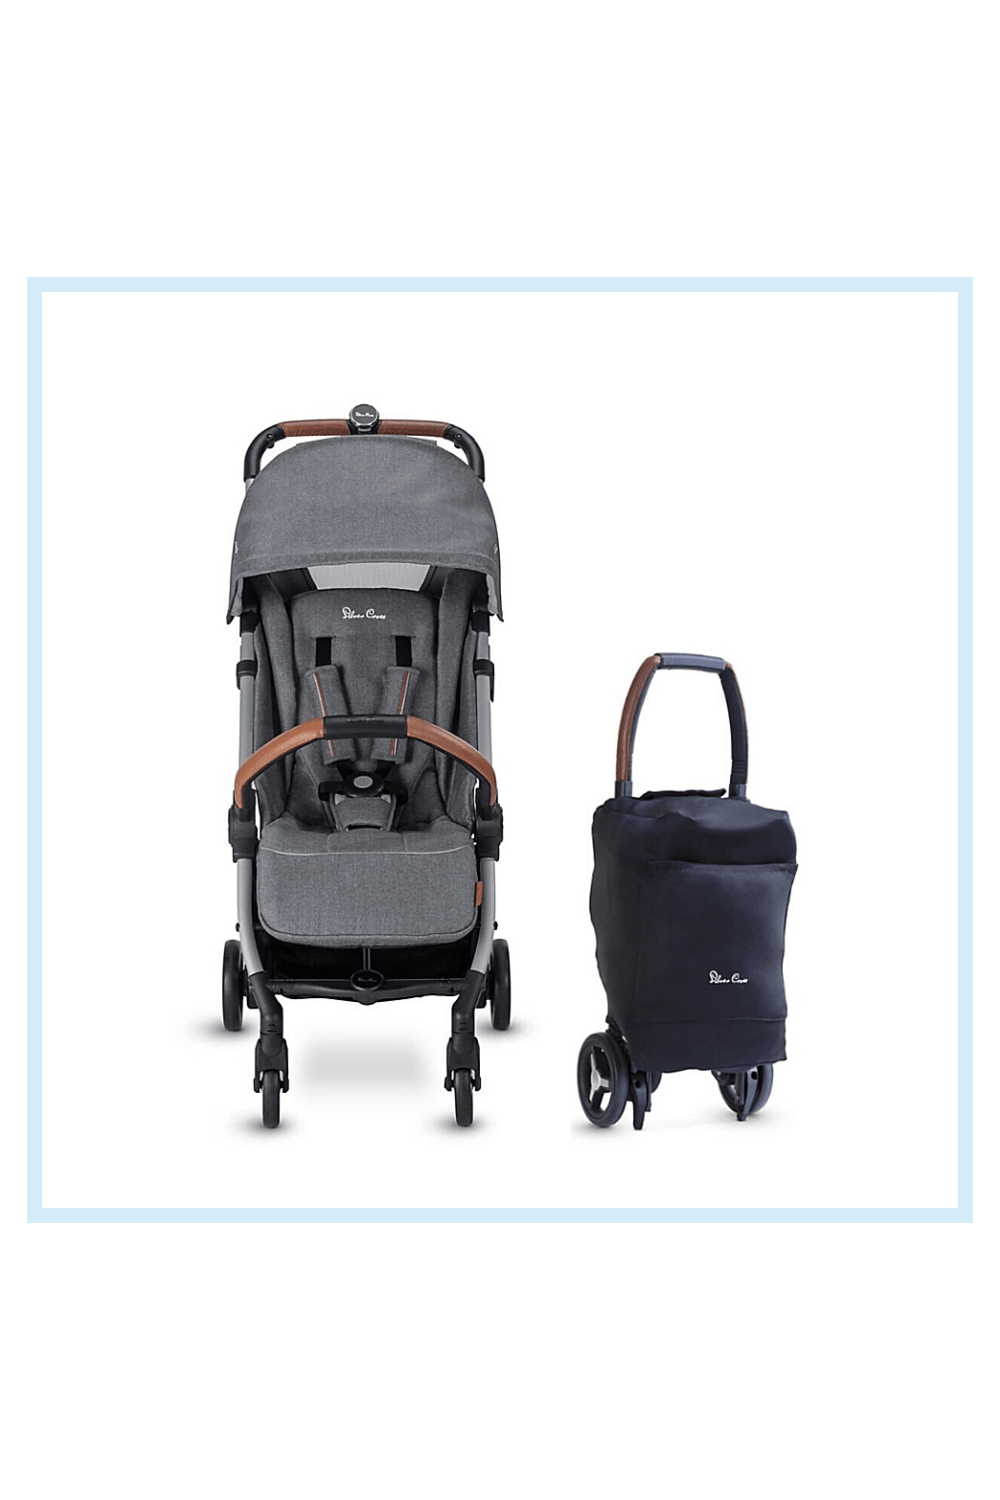 Silver Cross Jet 2020 Ultra Compact Special Edition Single Stroller In Mist - Lightweight, compact, and suitable from birth, the Silver Cross Jet 2020 Special Edition Single Stroller is perfect for a busy family on the go. The new design has an increased weight capacity to 55 pounds, a larger seat capacity and higher handlebar.